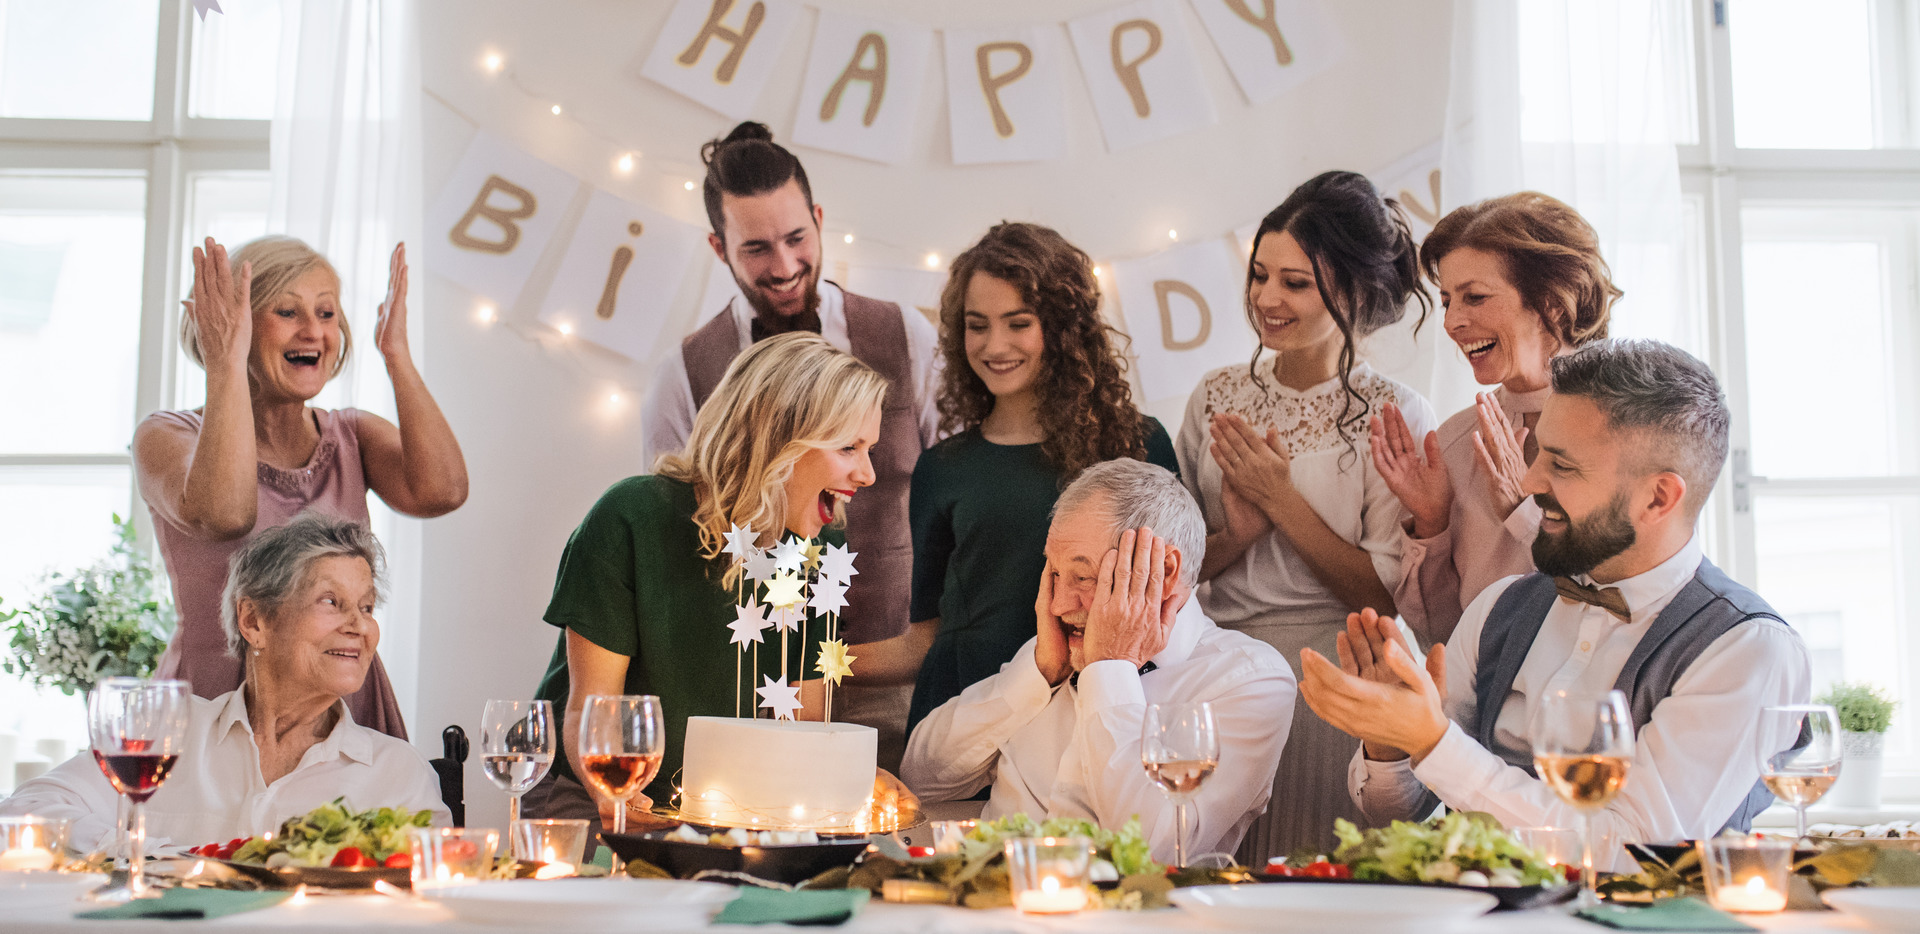 grandfather shows elated surprise as daughter brings cake with sparklers and stars to the banquet table while the rest of the family applauds and cheers; festive happy brithday banner, twinkle lights and candles decorate the room